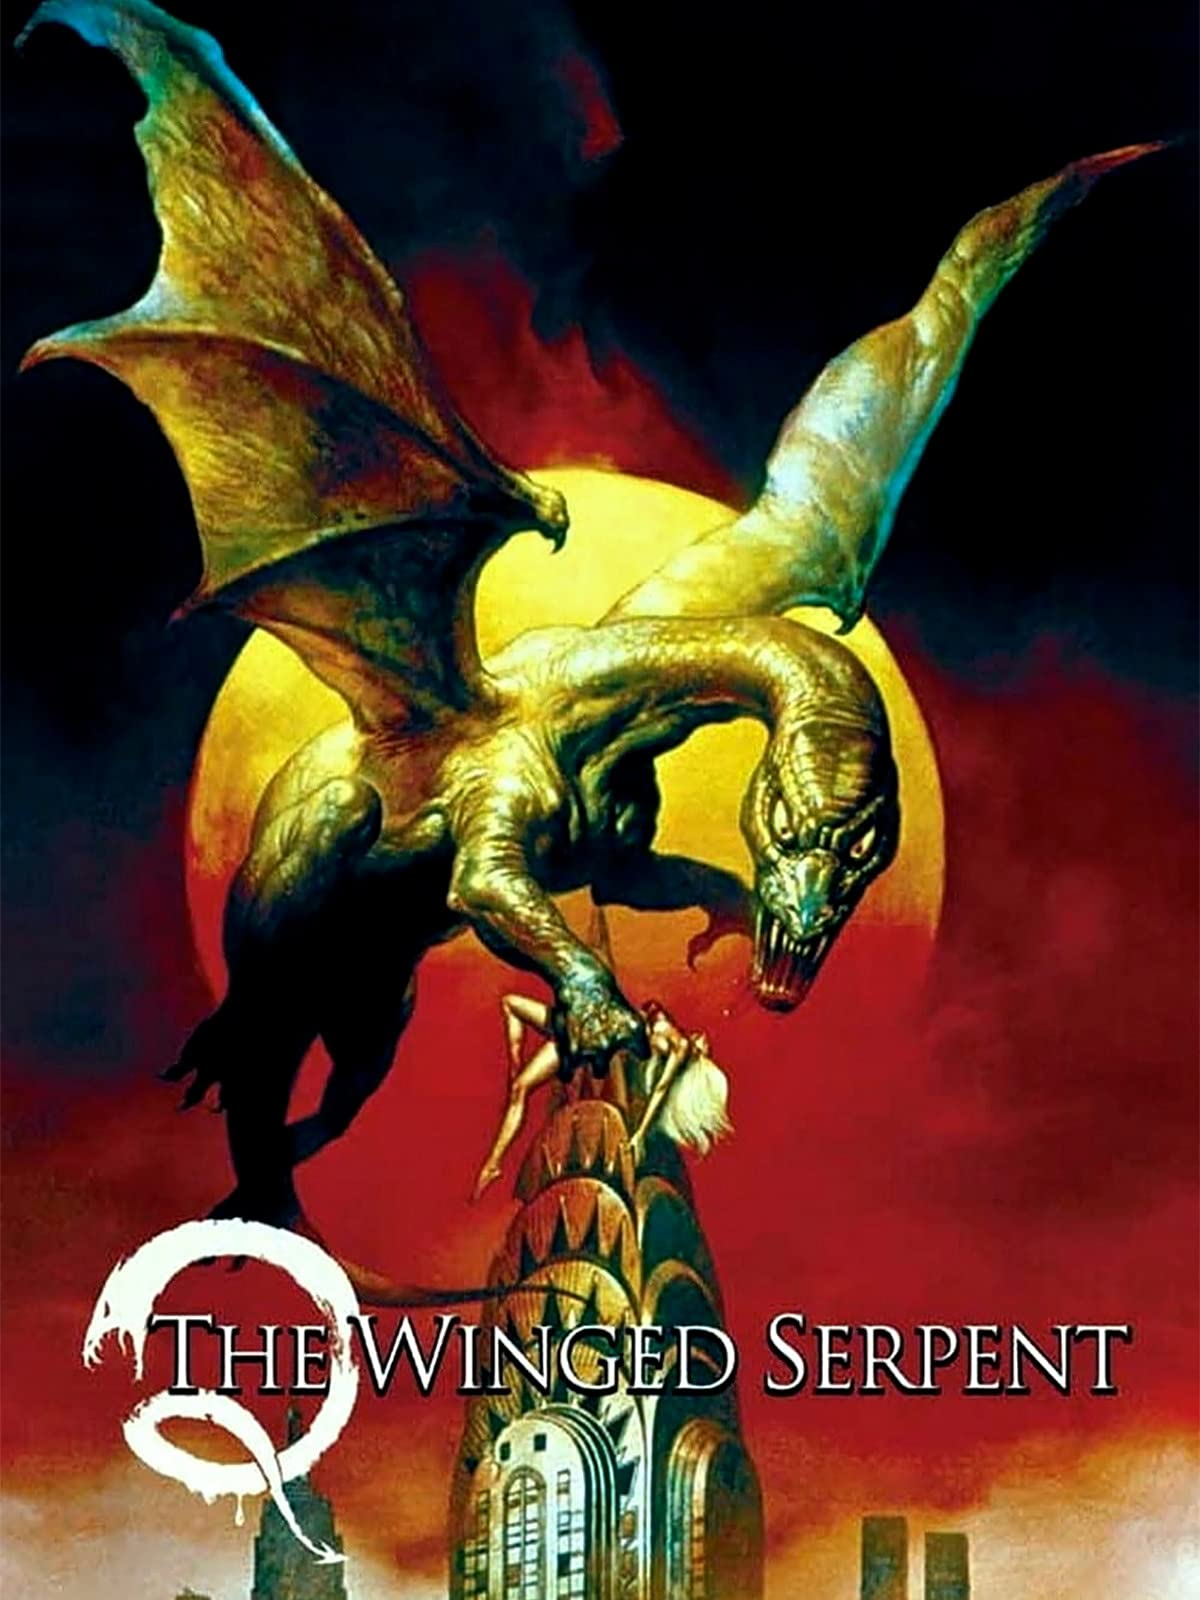 Q - The Winged Serpent